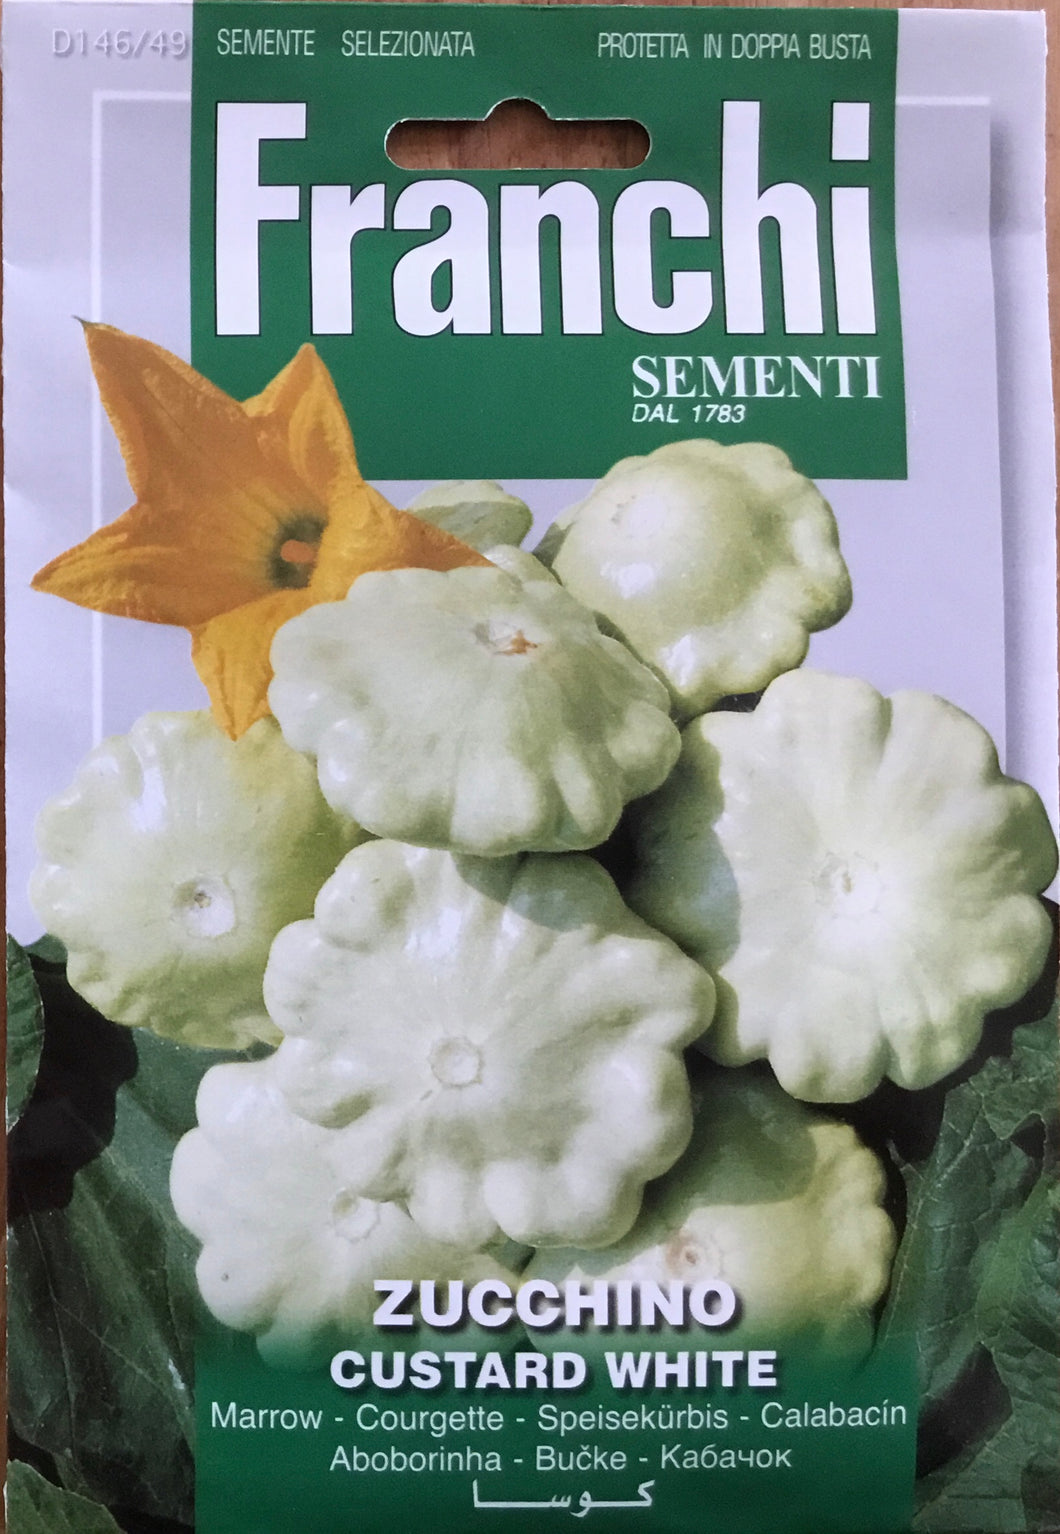 Franchi of Italy Courgette custard white